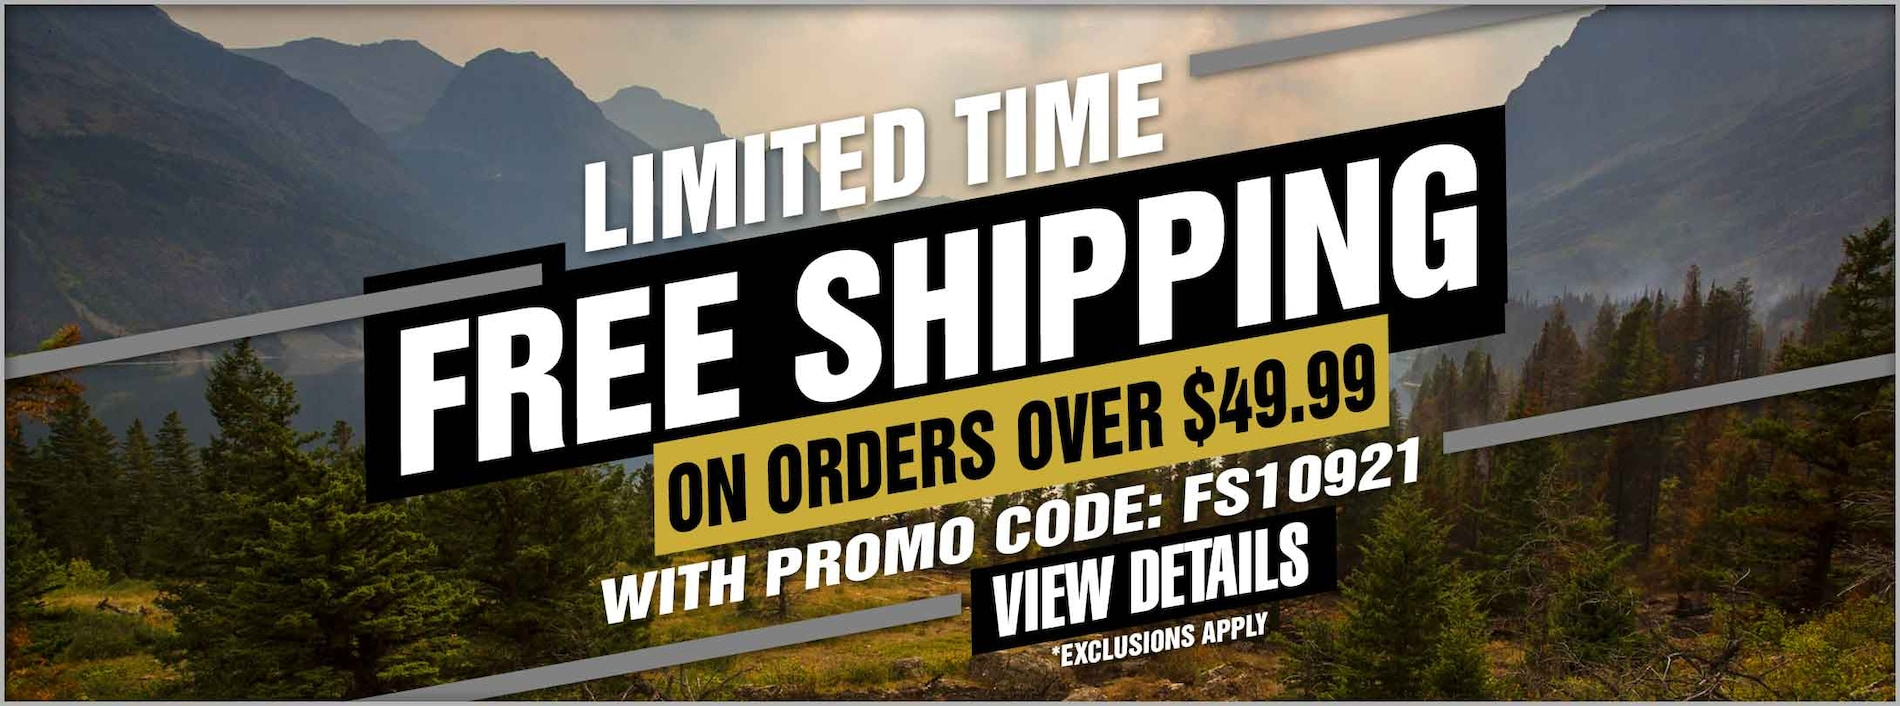 Free Shipping on $49.99 Orders